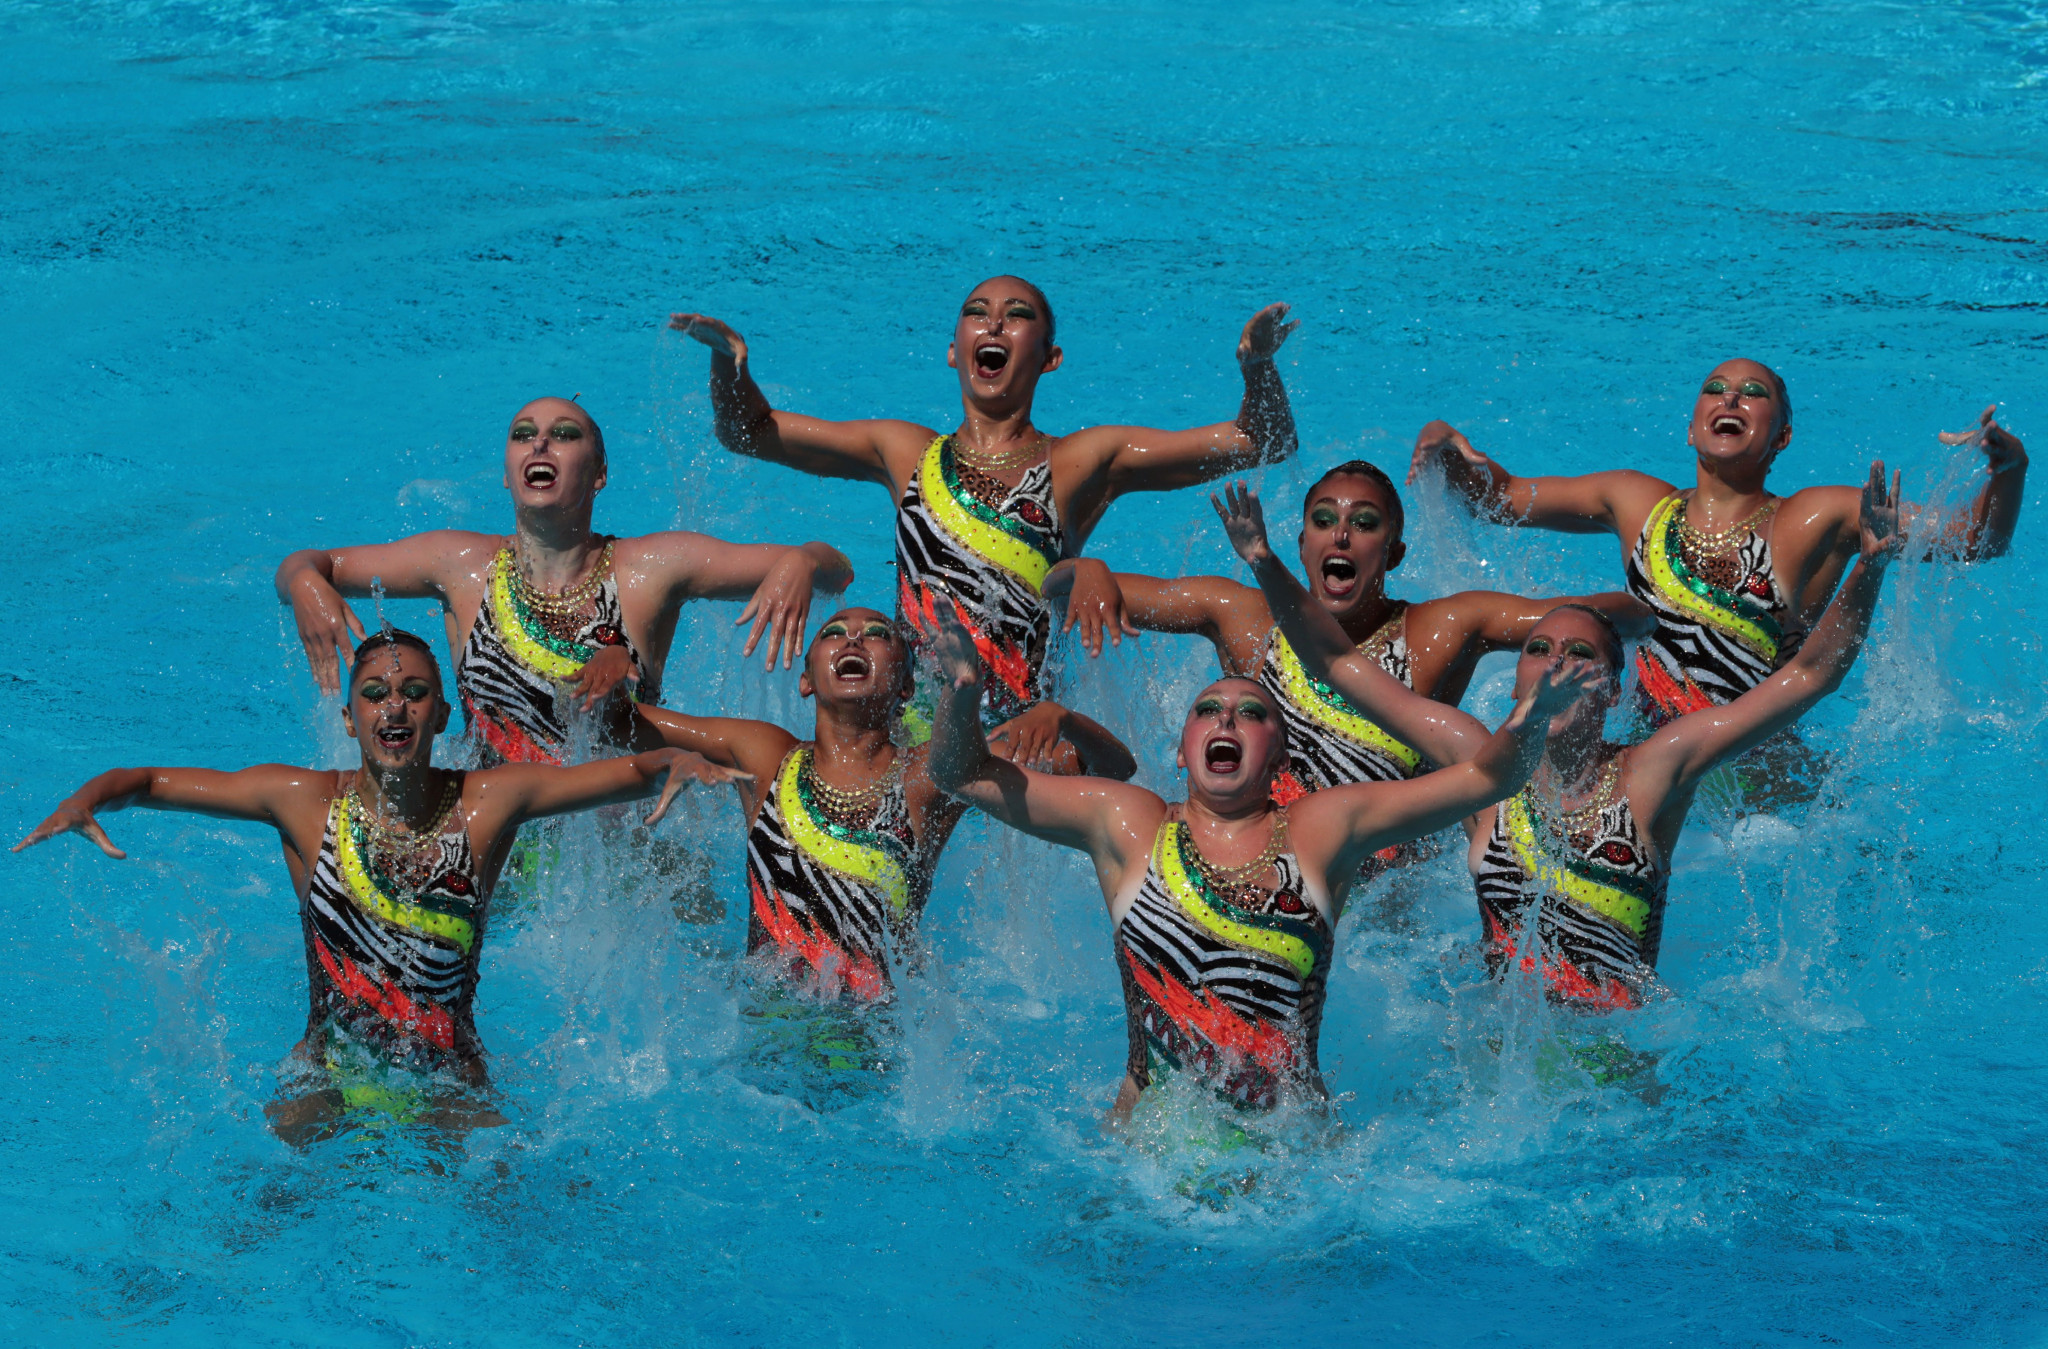 Four-time Olympic medallist Fuentes named head coach at USA Synchro